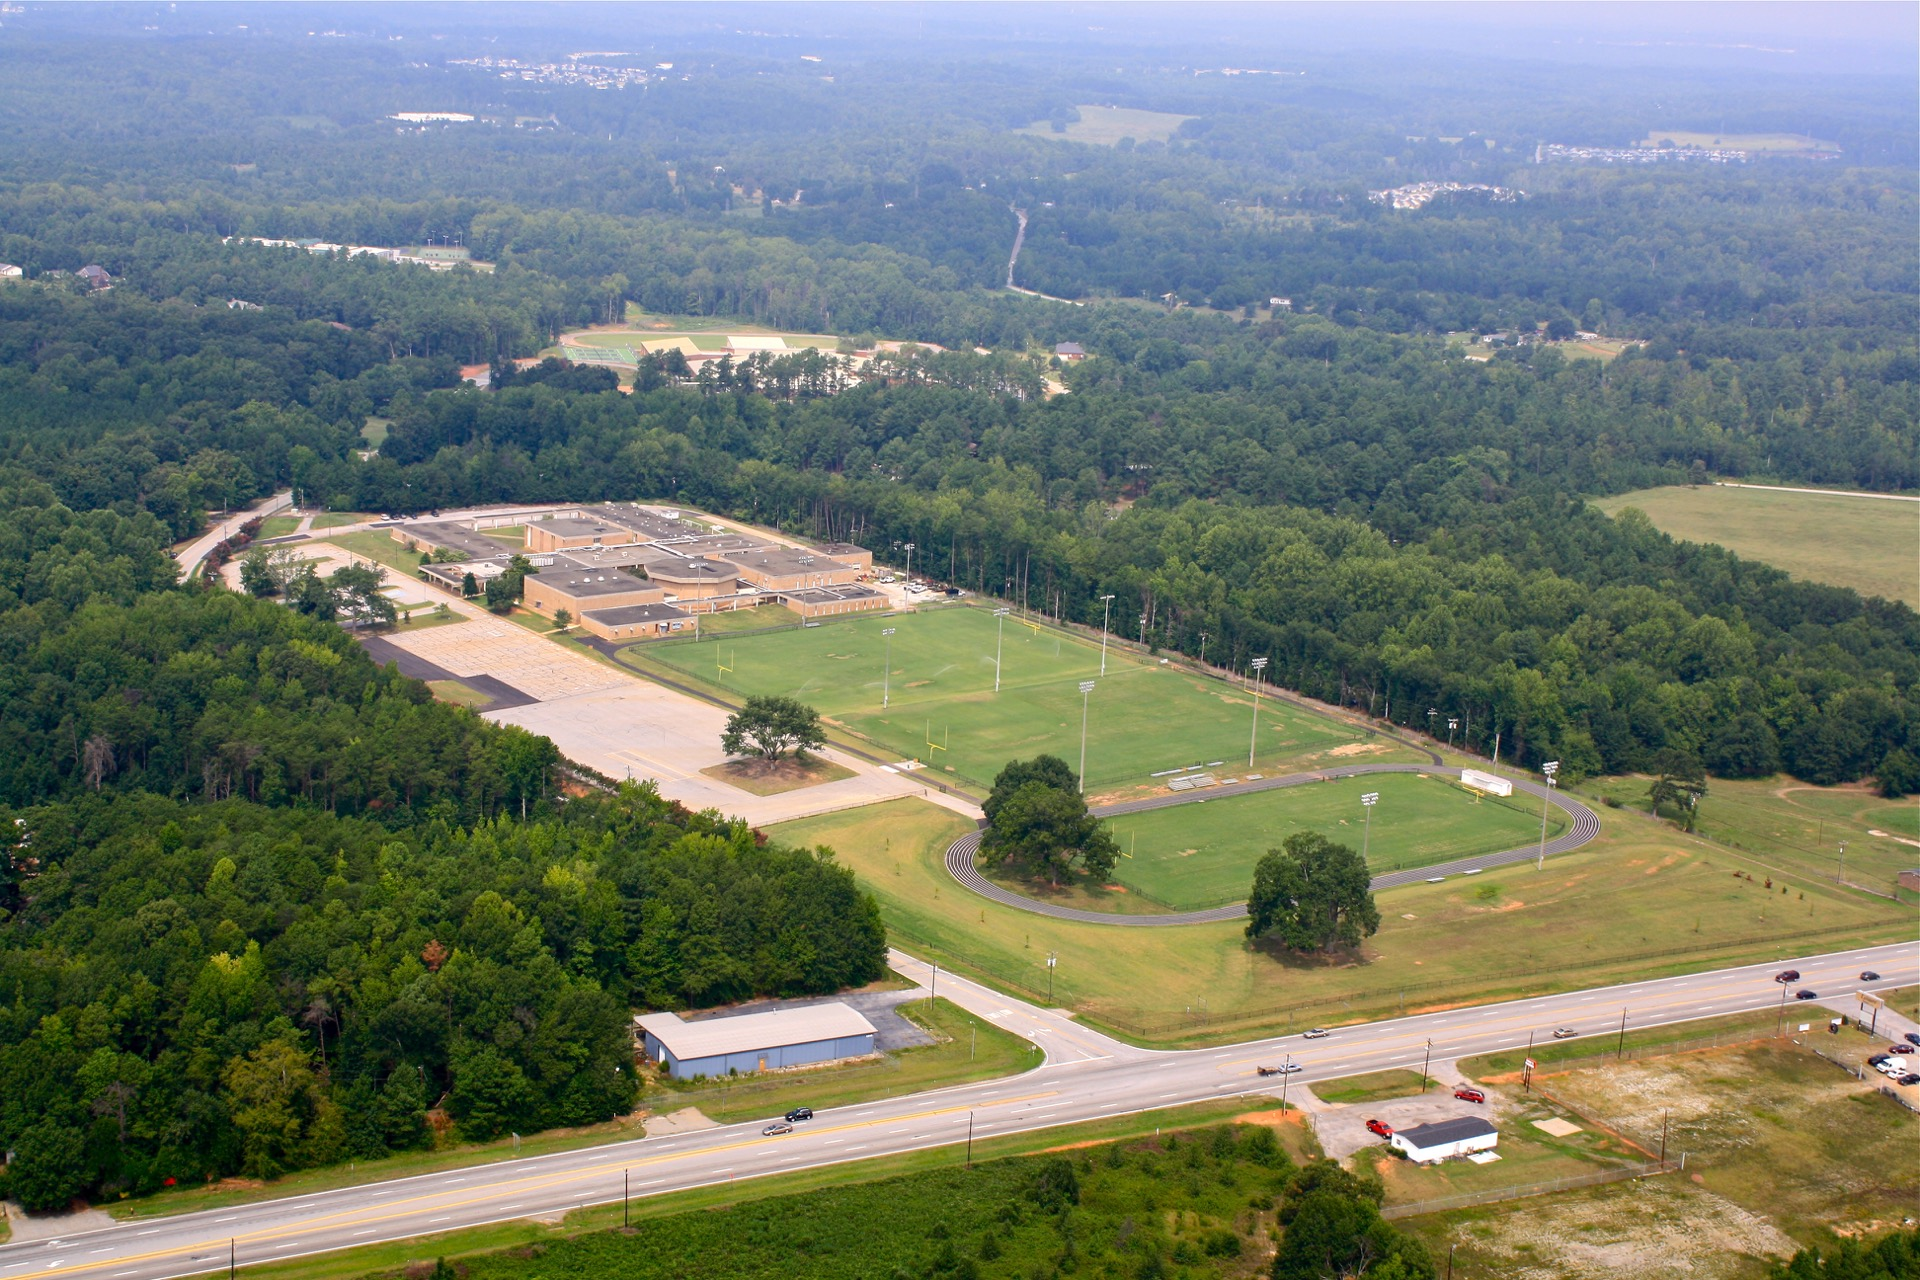 piedmont athletic complex aerial